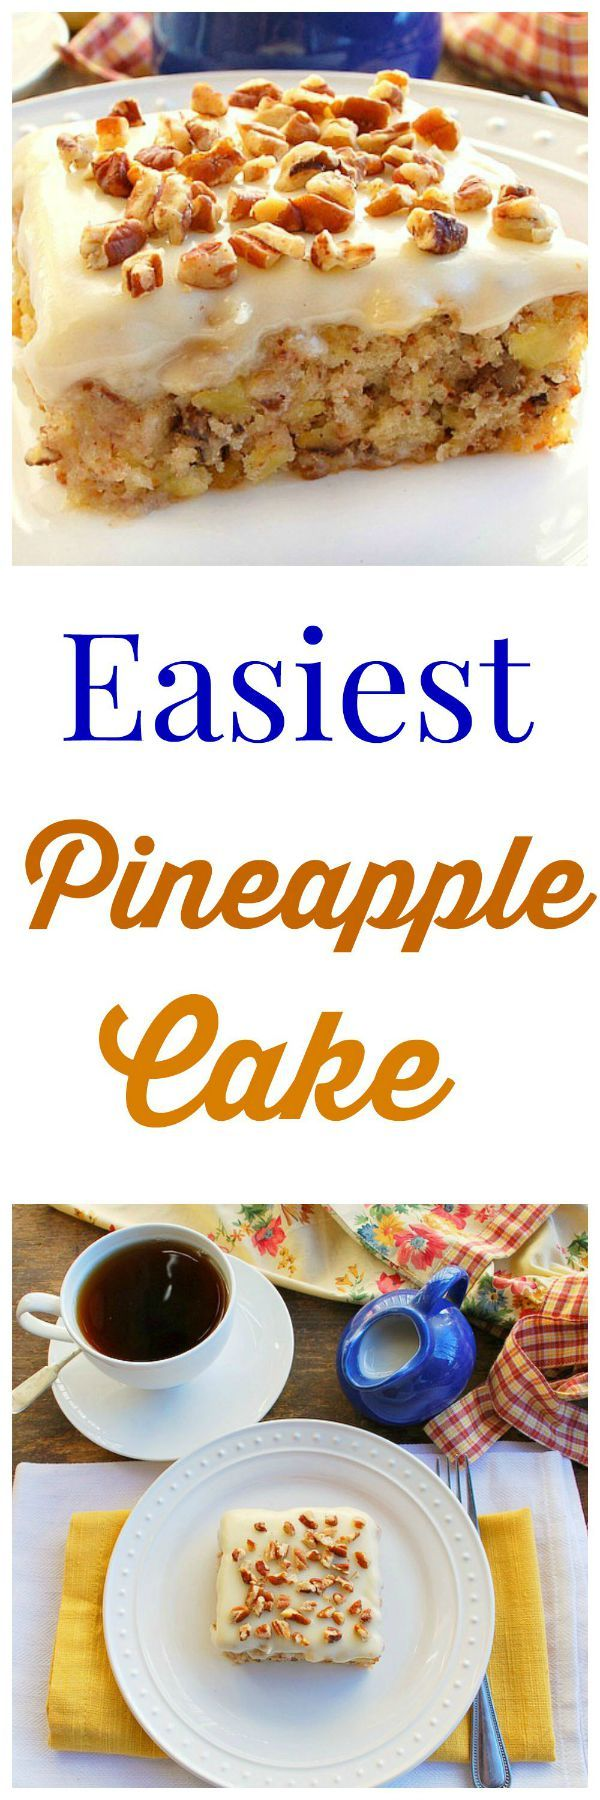 Easiest Pineapple Cake A dense incredibly moist pineapple cake made in one bowl. The cream cheese frosting is put on the cake while it's hot so it seeps into the top of the cake. It's delicious!